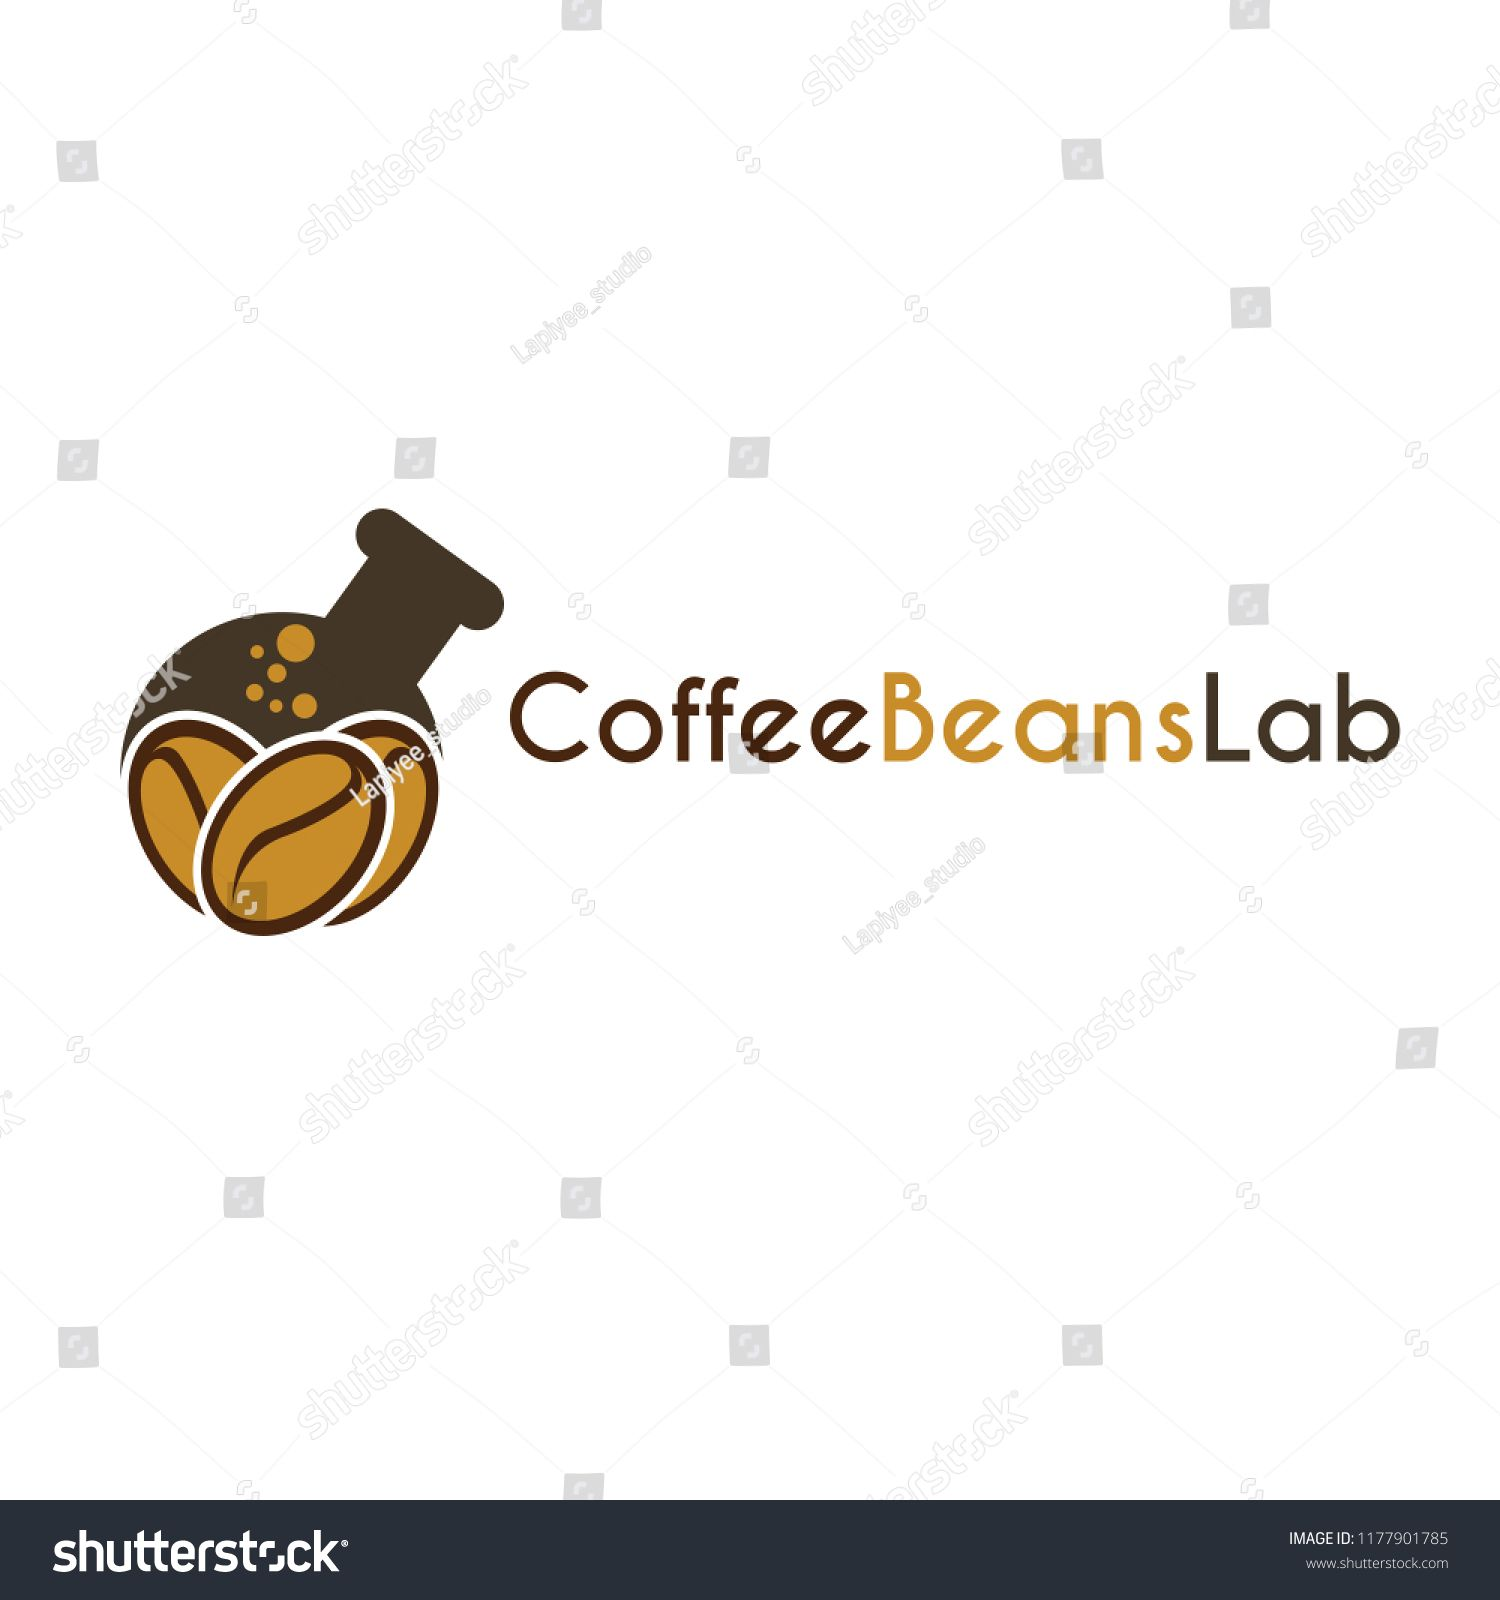 Vector icon symbols Coffee Beans Lab with Coffee beans and bottle